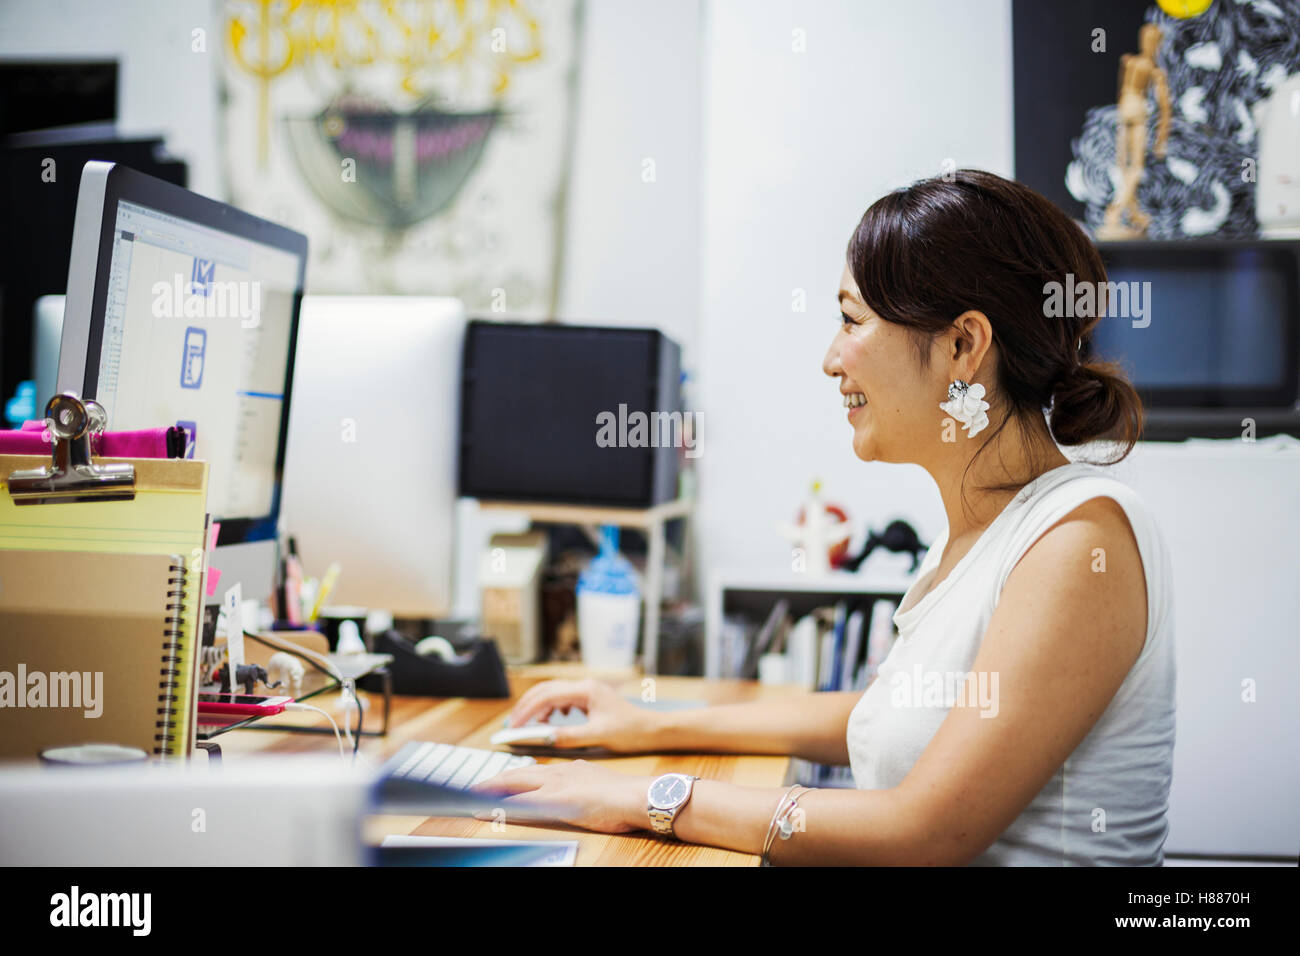 Design Studio. A woman sitting at a desk using a computer. - Stock Image